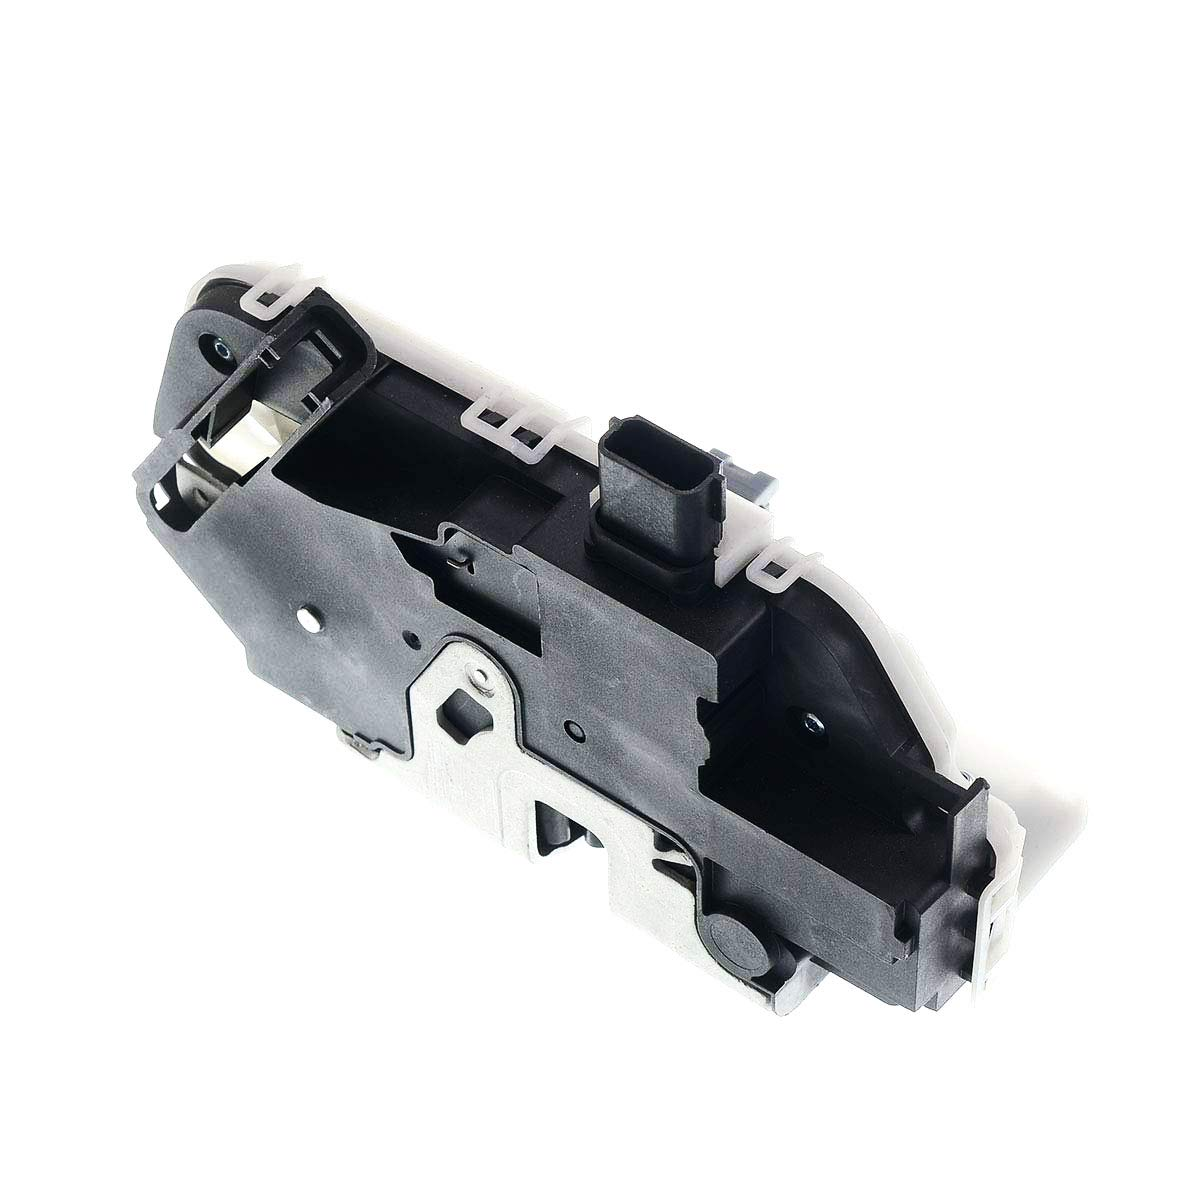 A-Premium Door Lock Actuator for Ford Edge Lincoln MKX 2007-2015 Front Passenger Side